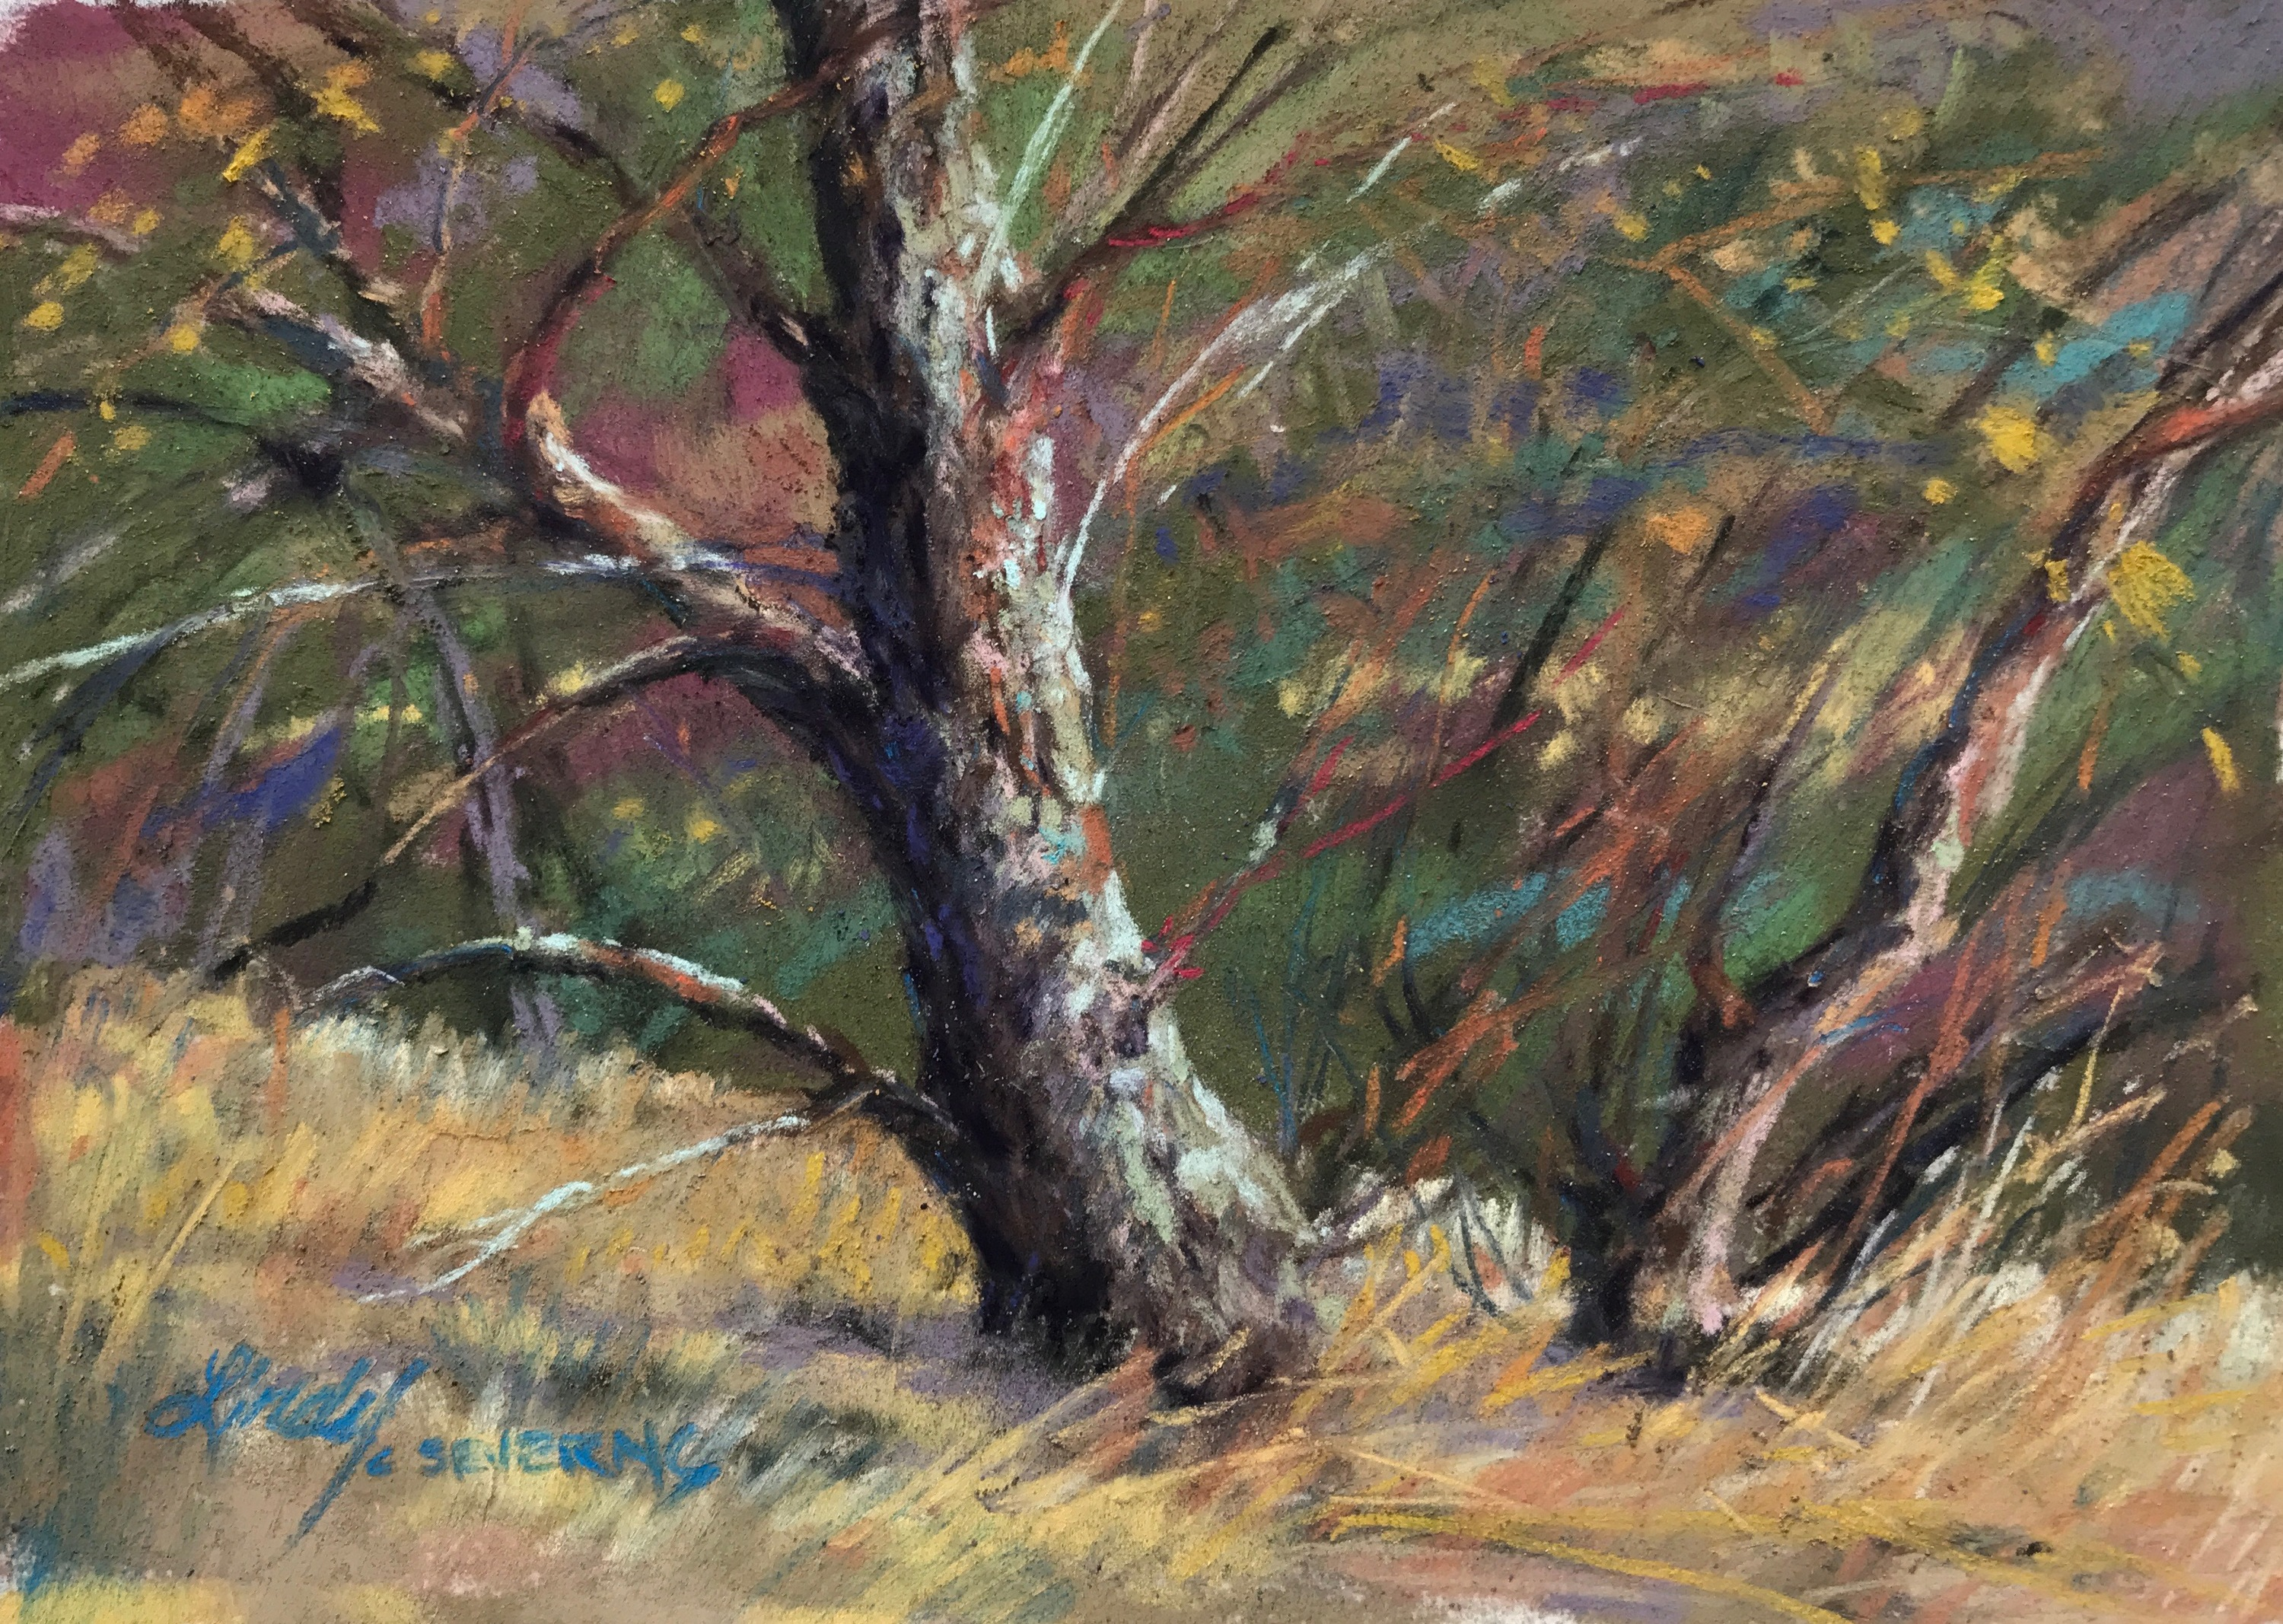 15f17 a singing mossbacked tree 4x6 in plein air pastel lindy c severns by3ob1